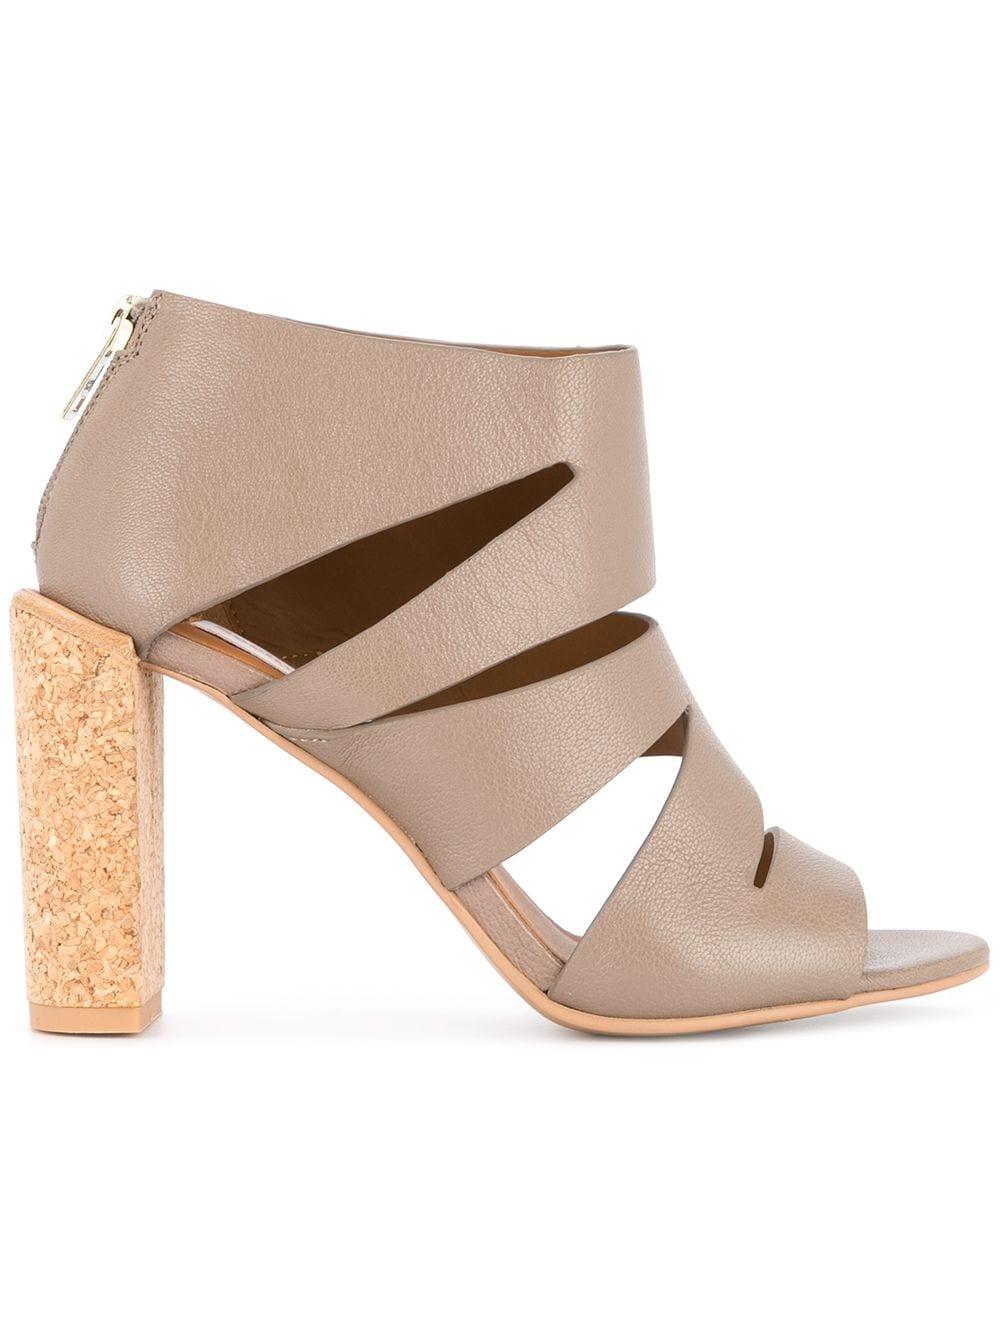 See by Chloé | block heel sandals | Clouty